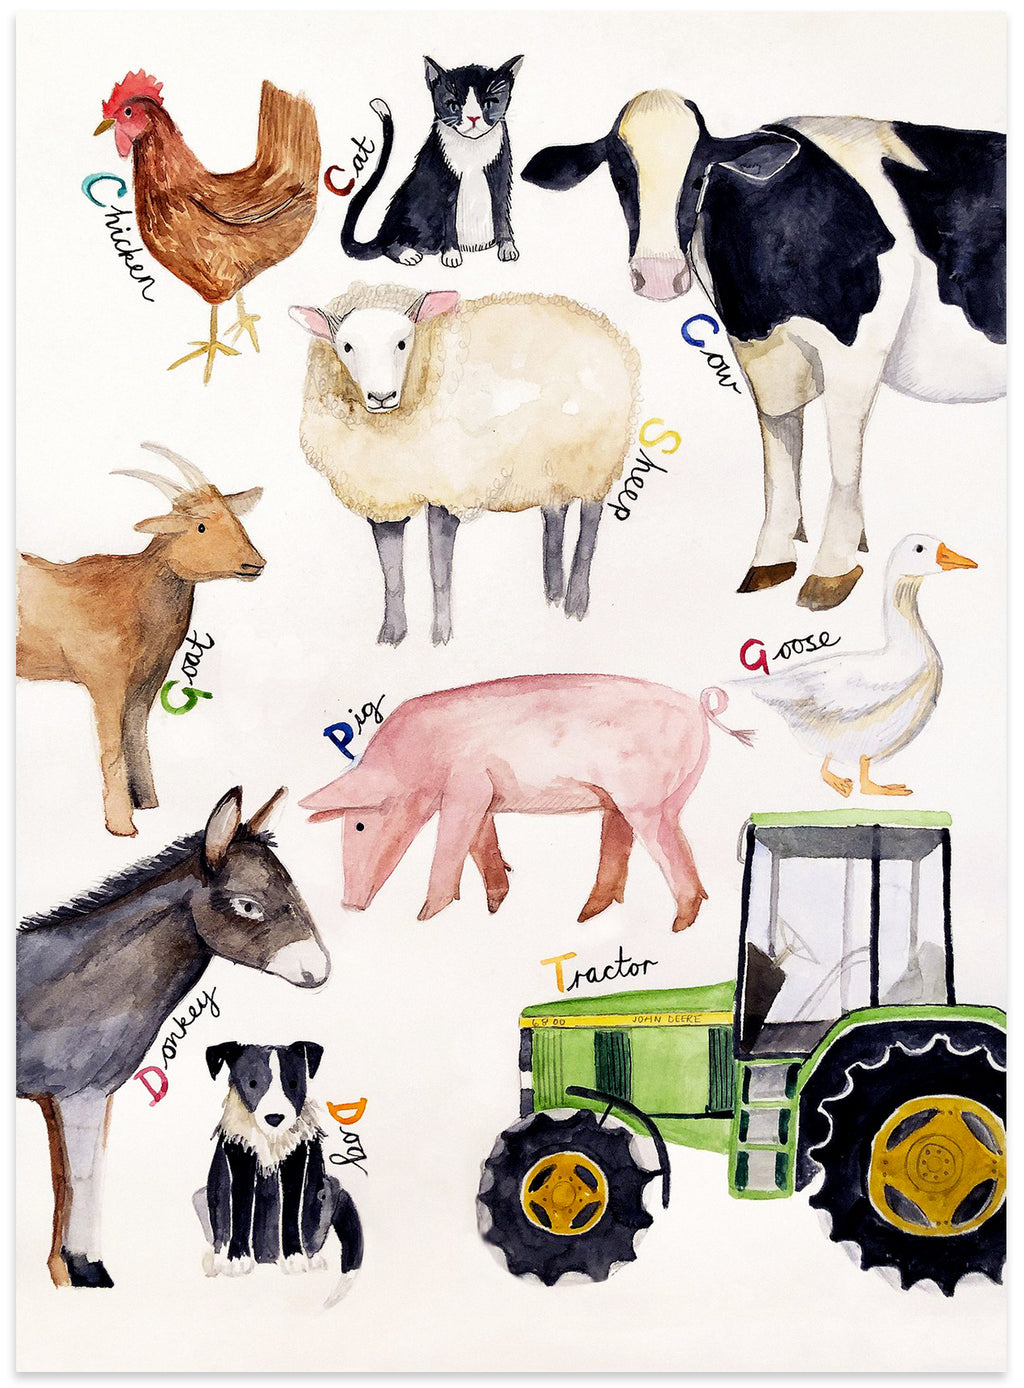 The Animal Farm